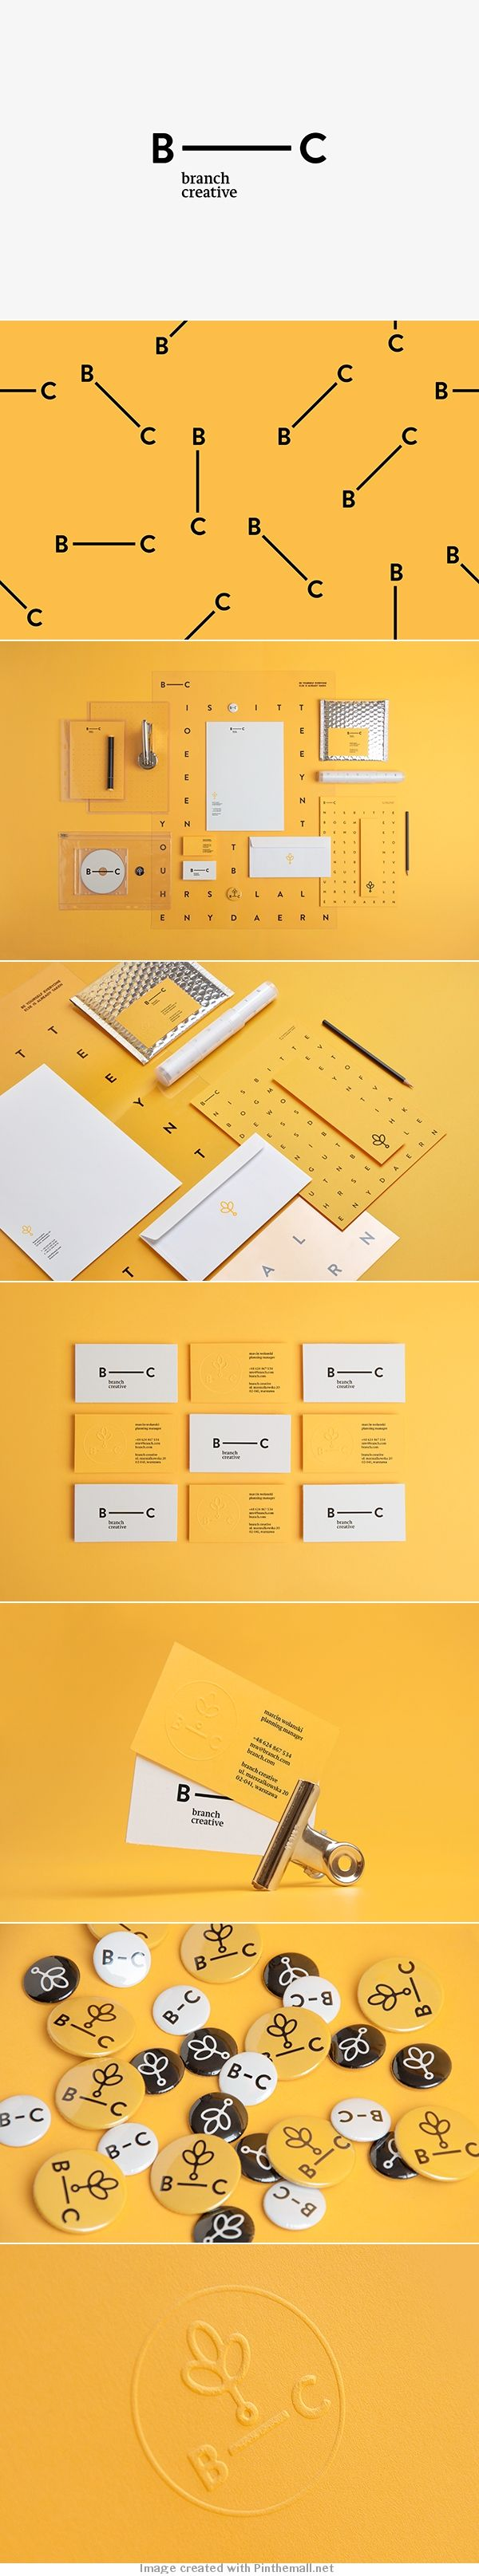 Branch Creative Branding Package